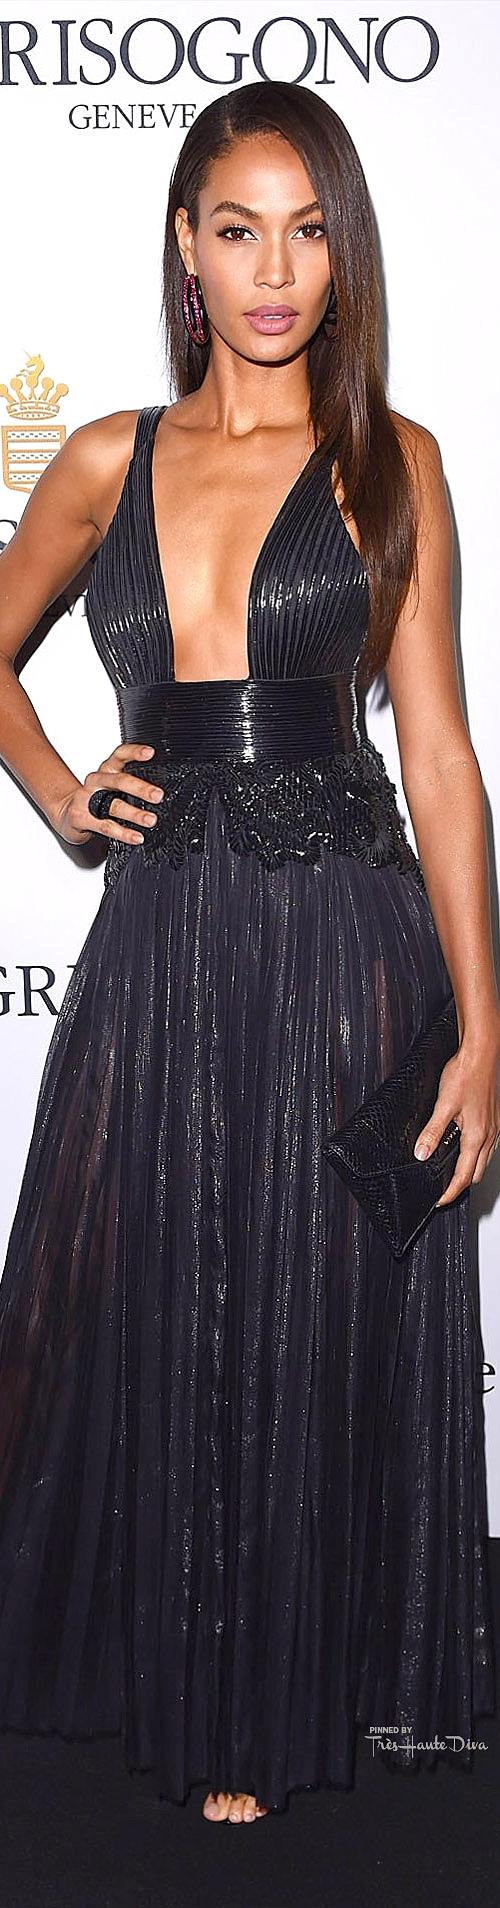 Joan Smalls in Givenchy Haute Couture by Riccardo Tisci  Rex Features